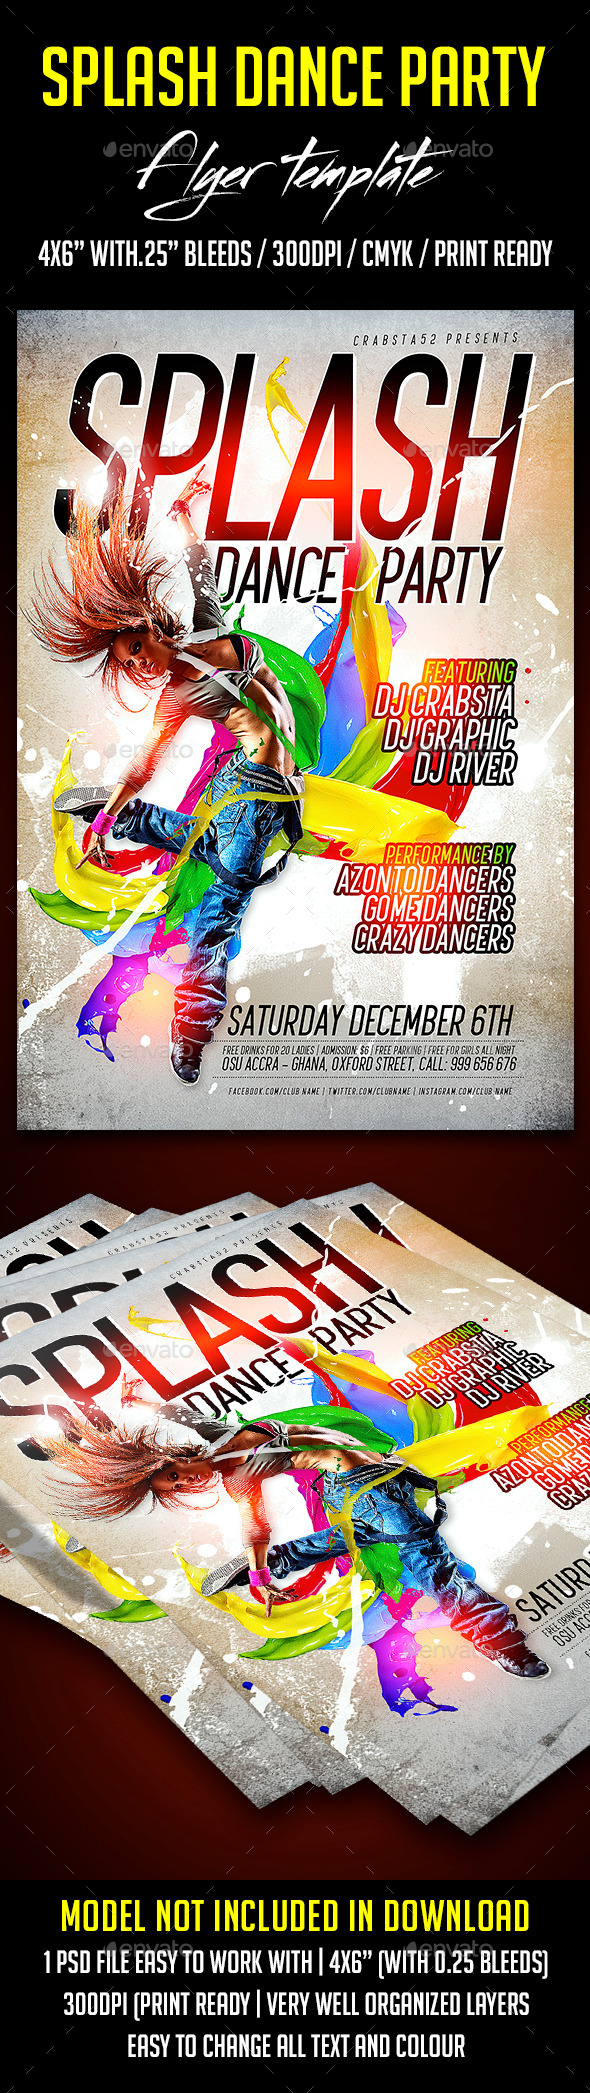 Splash Dance Party Flyer Template - Clubs & Parties Events